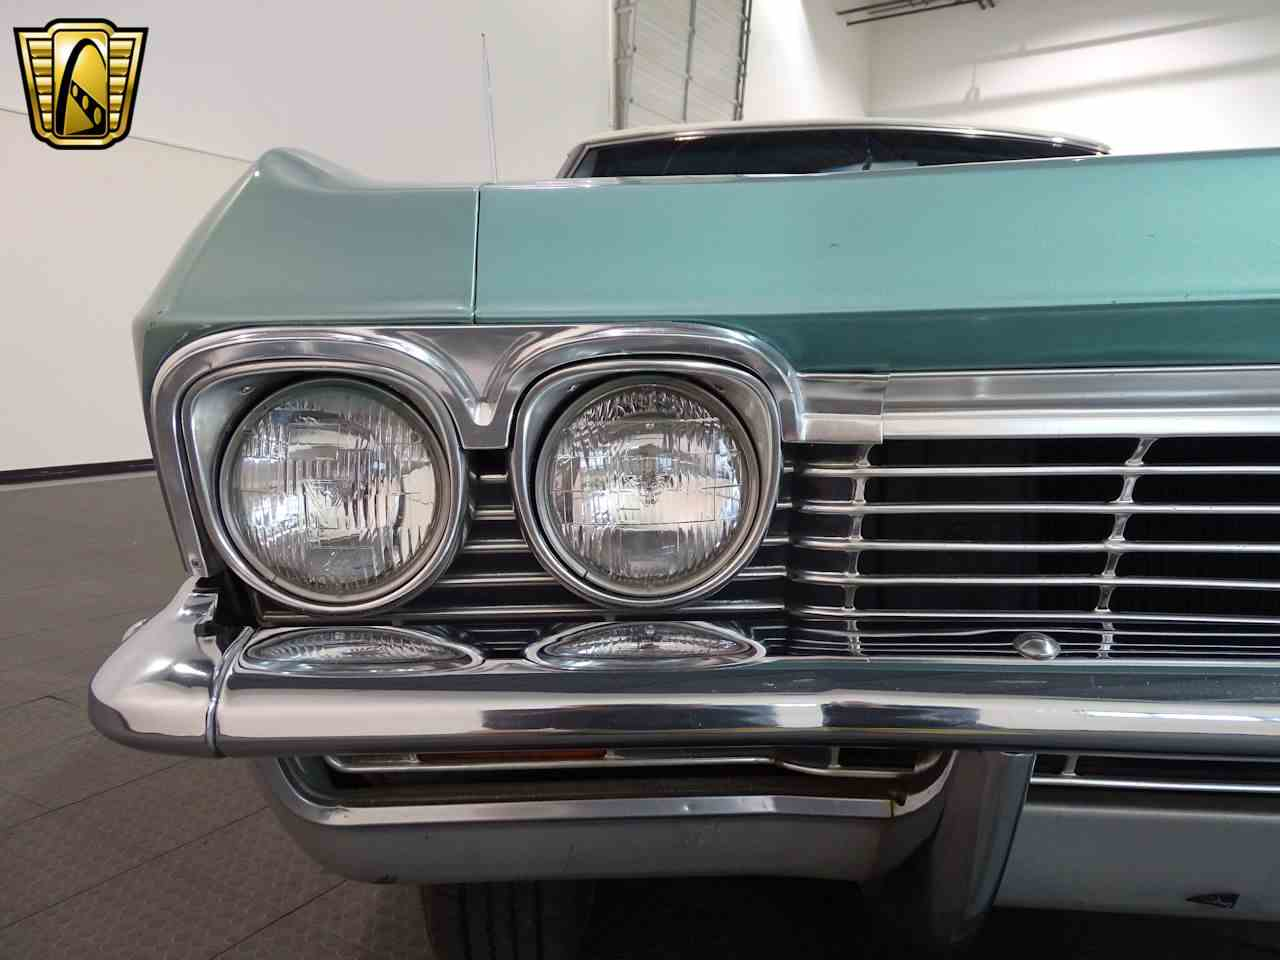 Large Picture of '65 Chevrolet Impala located in Indianapolis Indiana - $34,995.00 Offered by Gateway Classic Cars - Indianapolis - L5YV